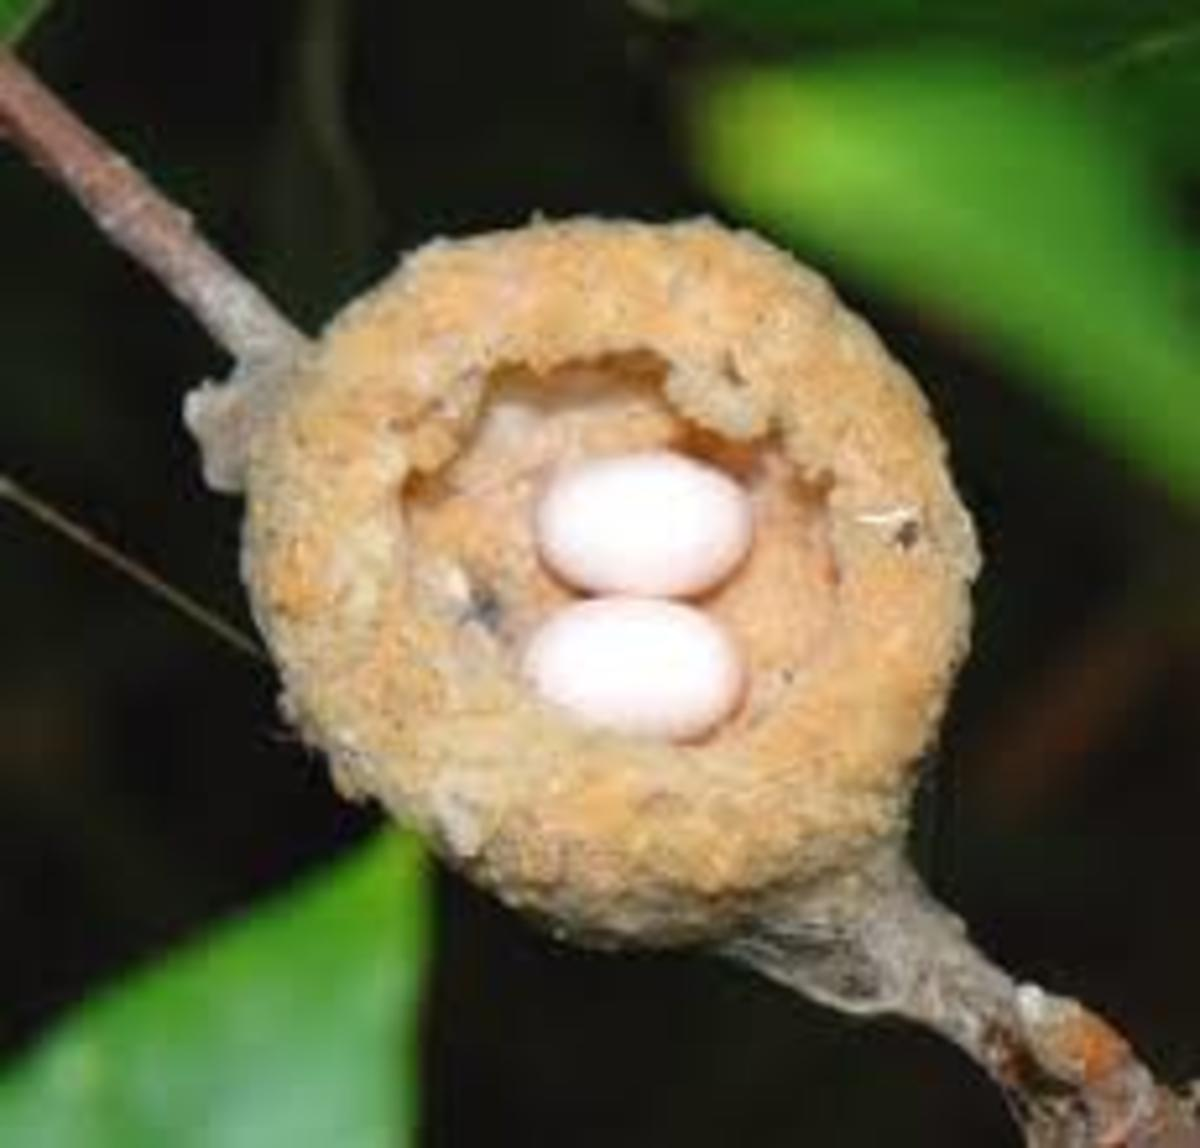 Hummingbird nest—a downy little cup with its two jelly bean sized eggs.